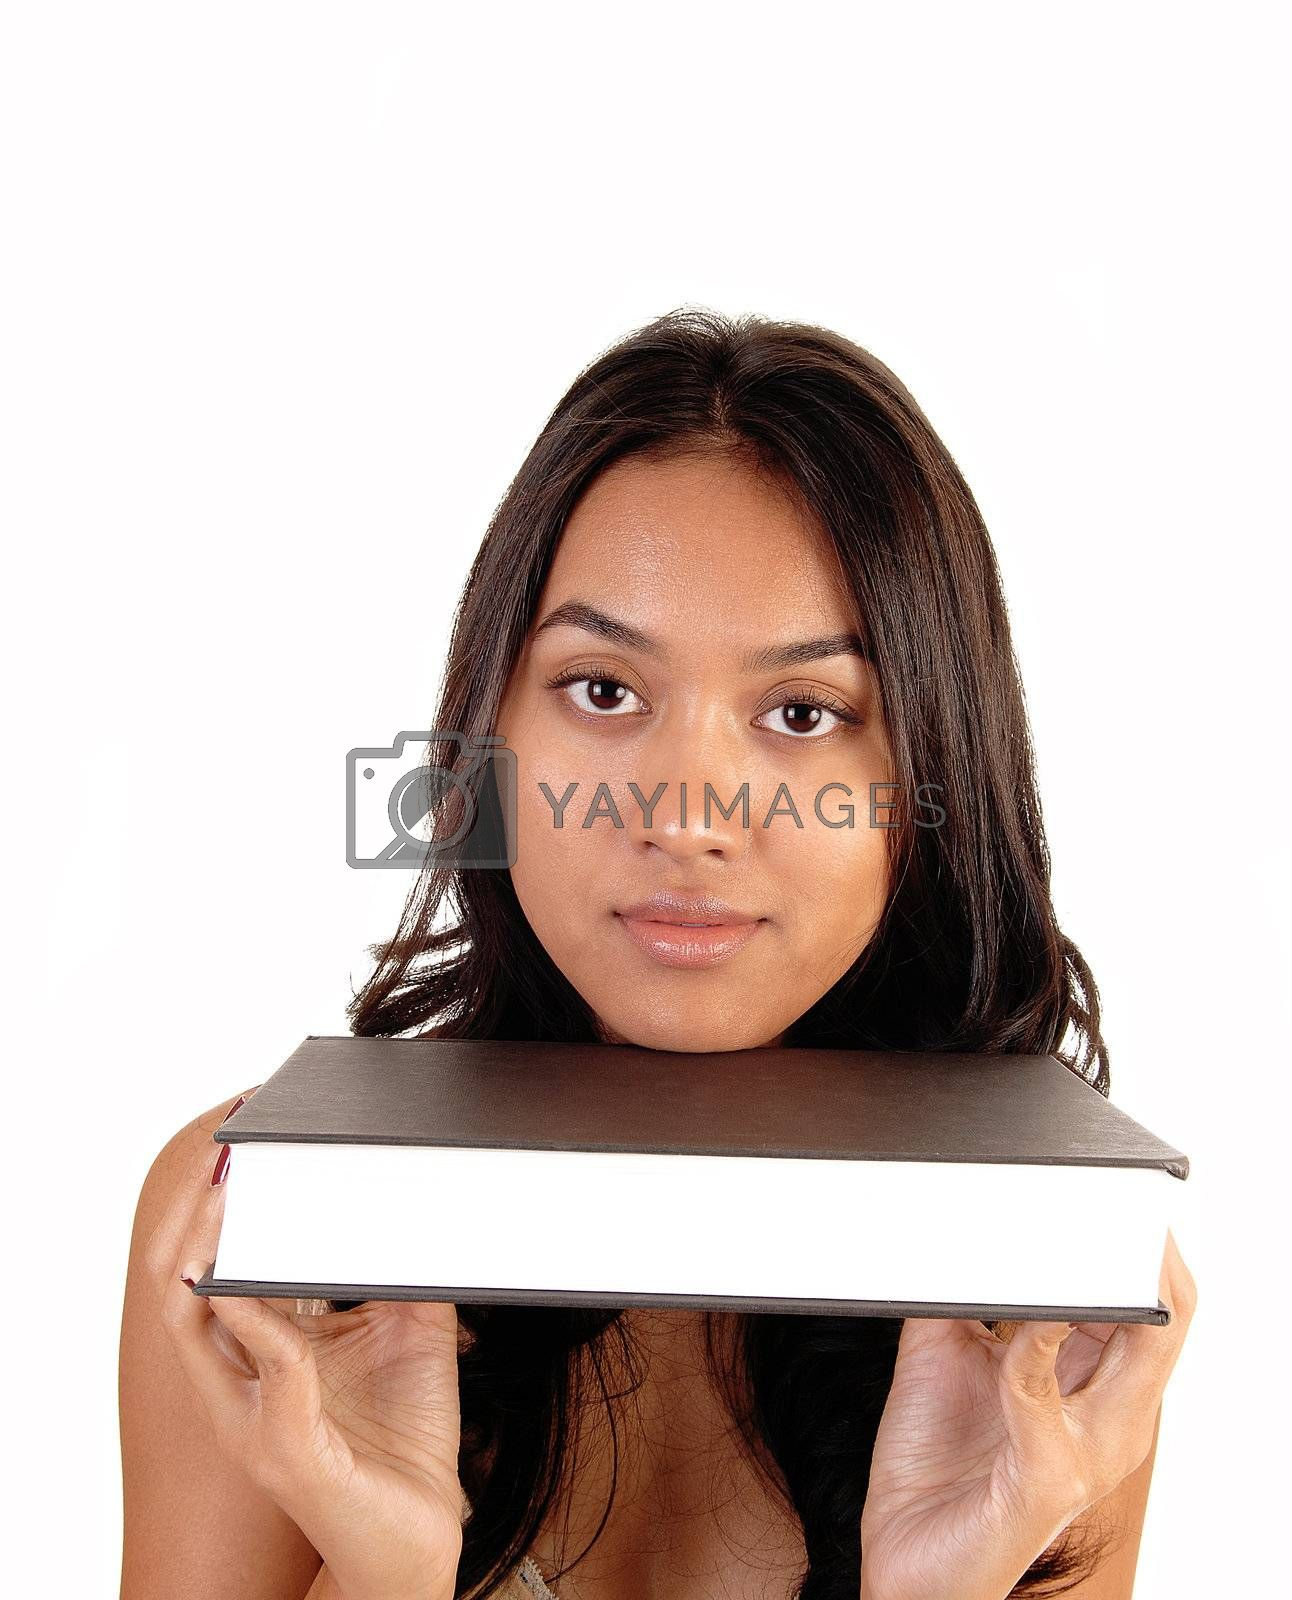 A lovely Asian girl holding a brown coffered book under her chin, for white background.